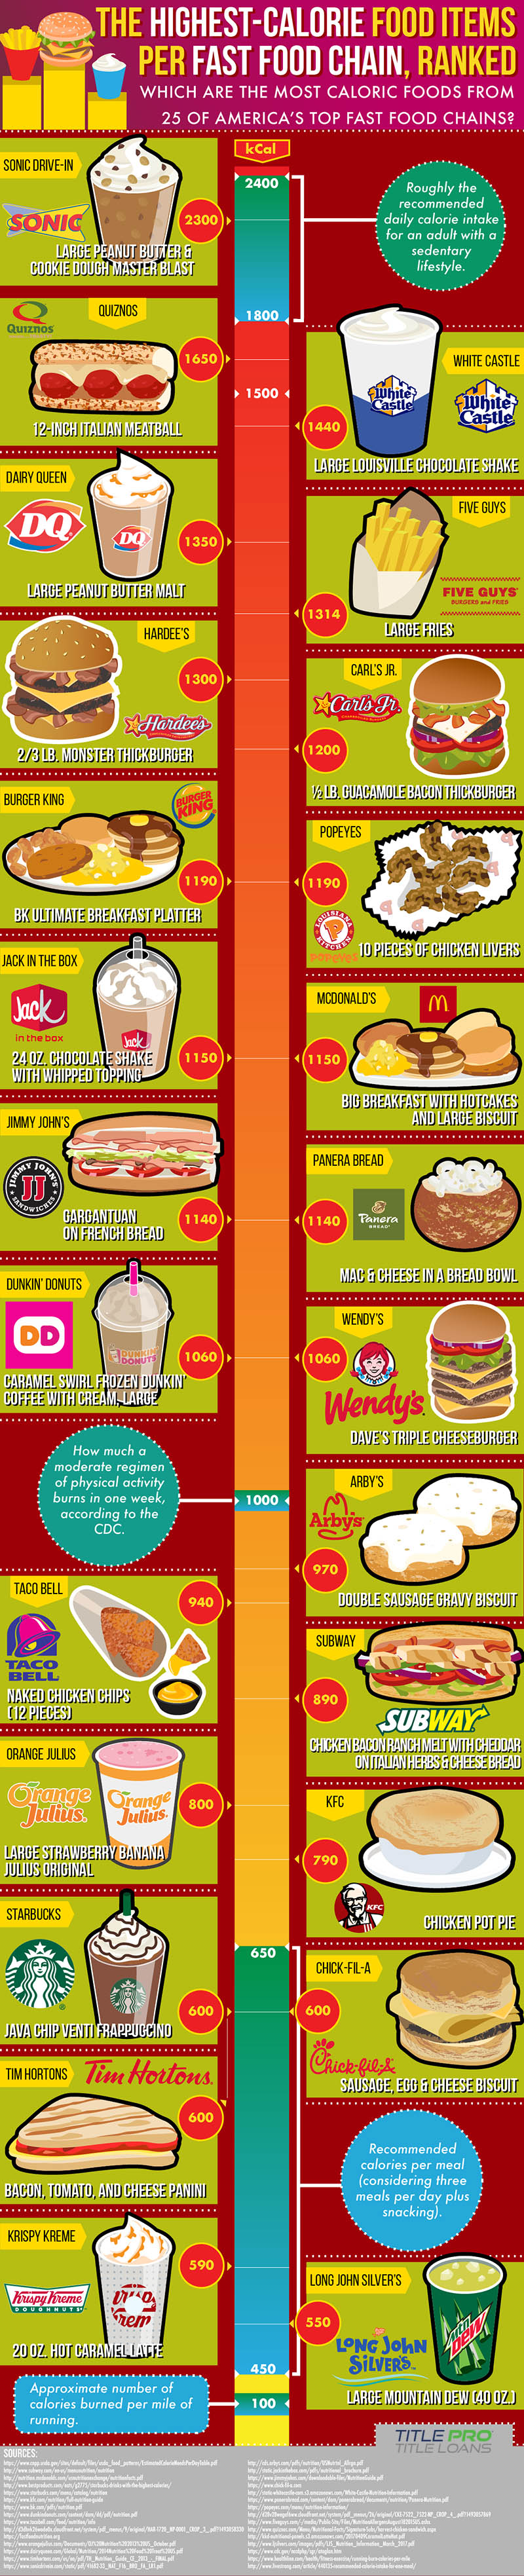 The Highest Calorie Food Items of 25 Fast Food Chains